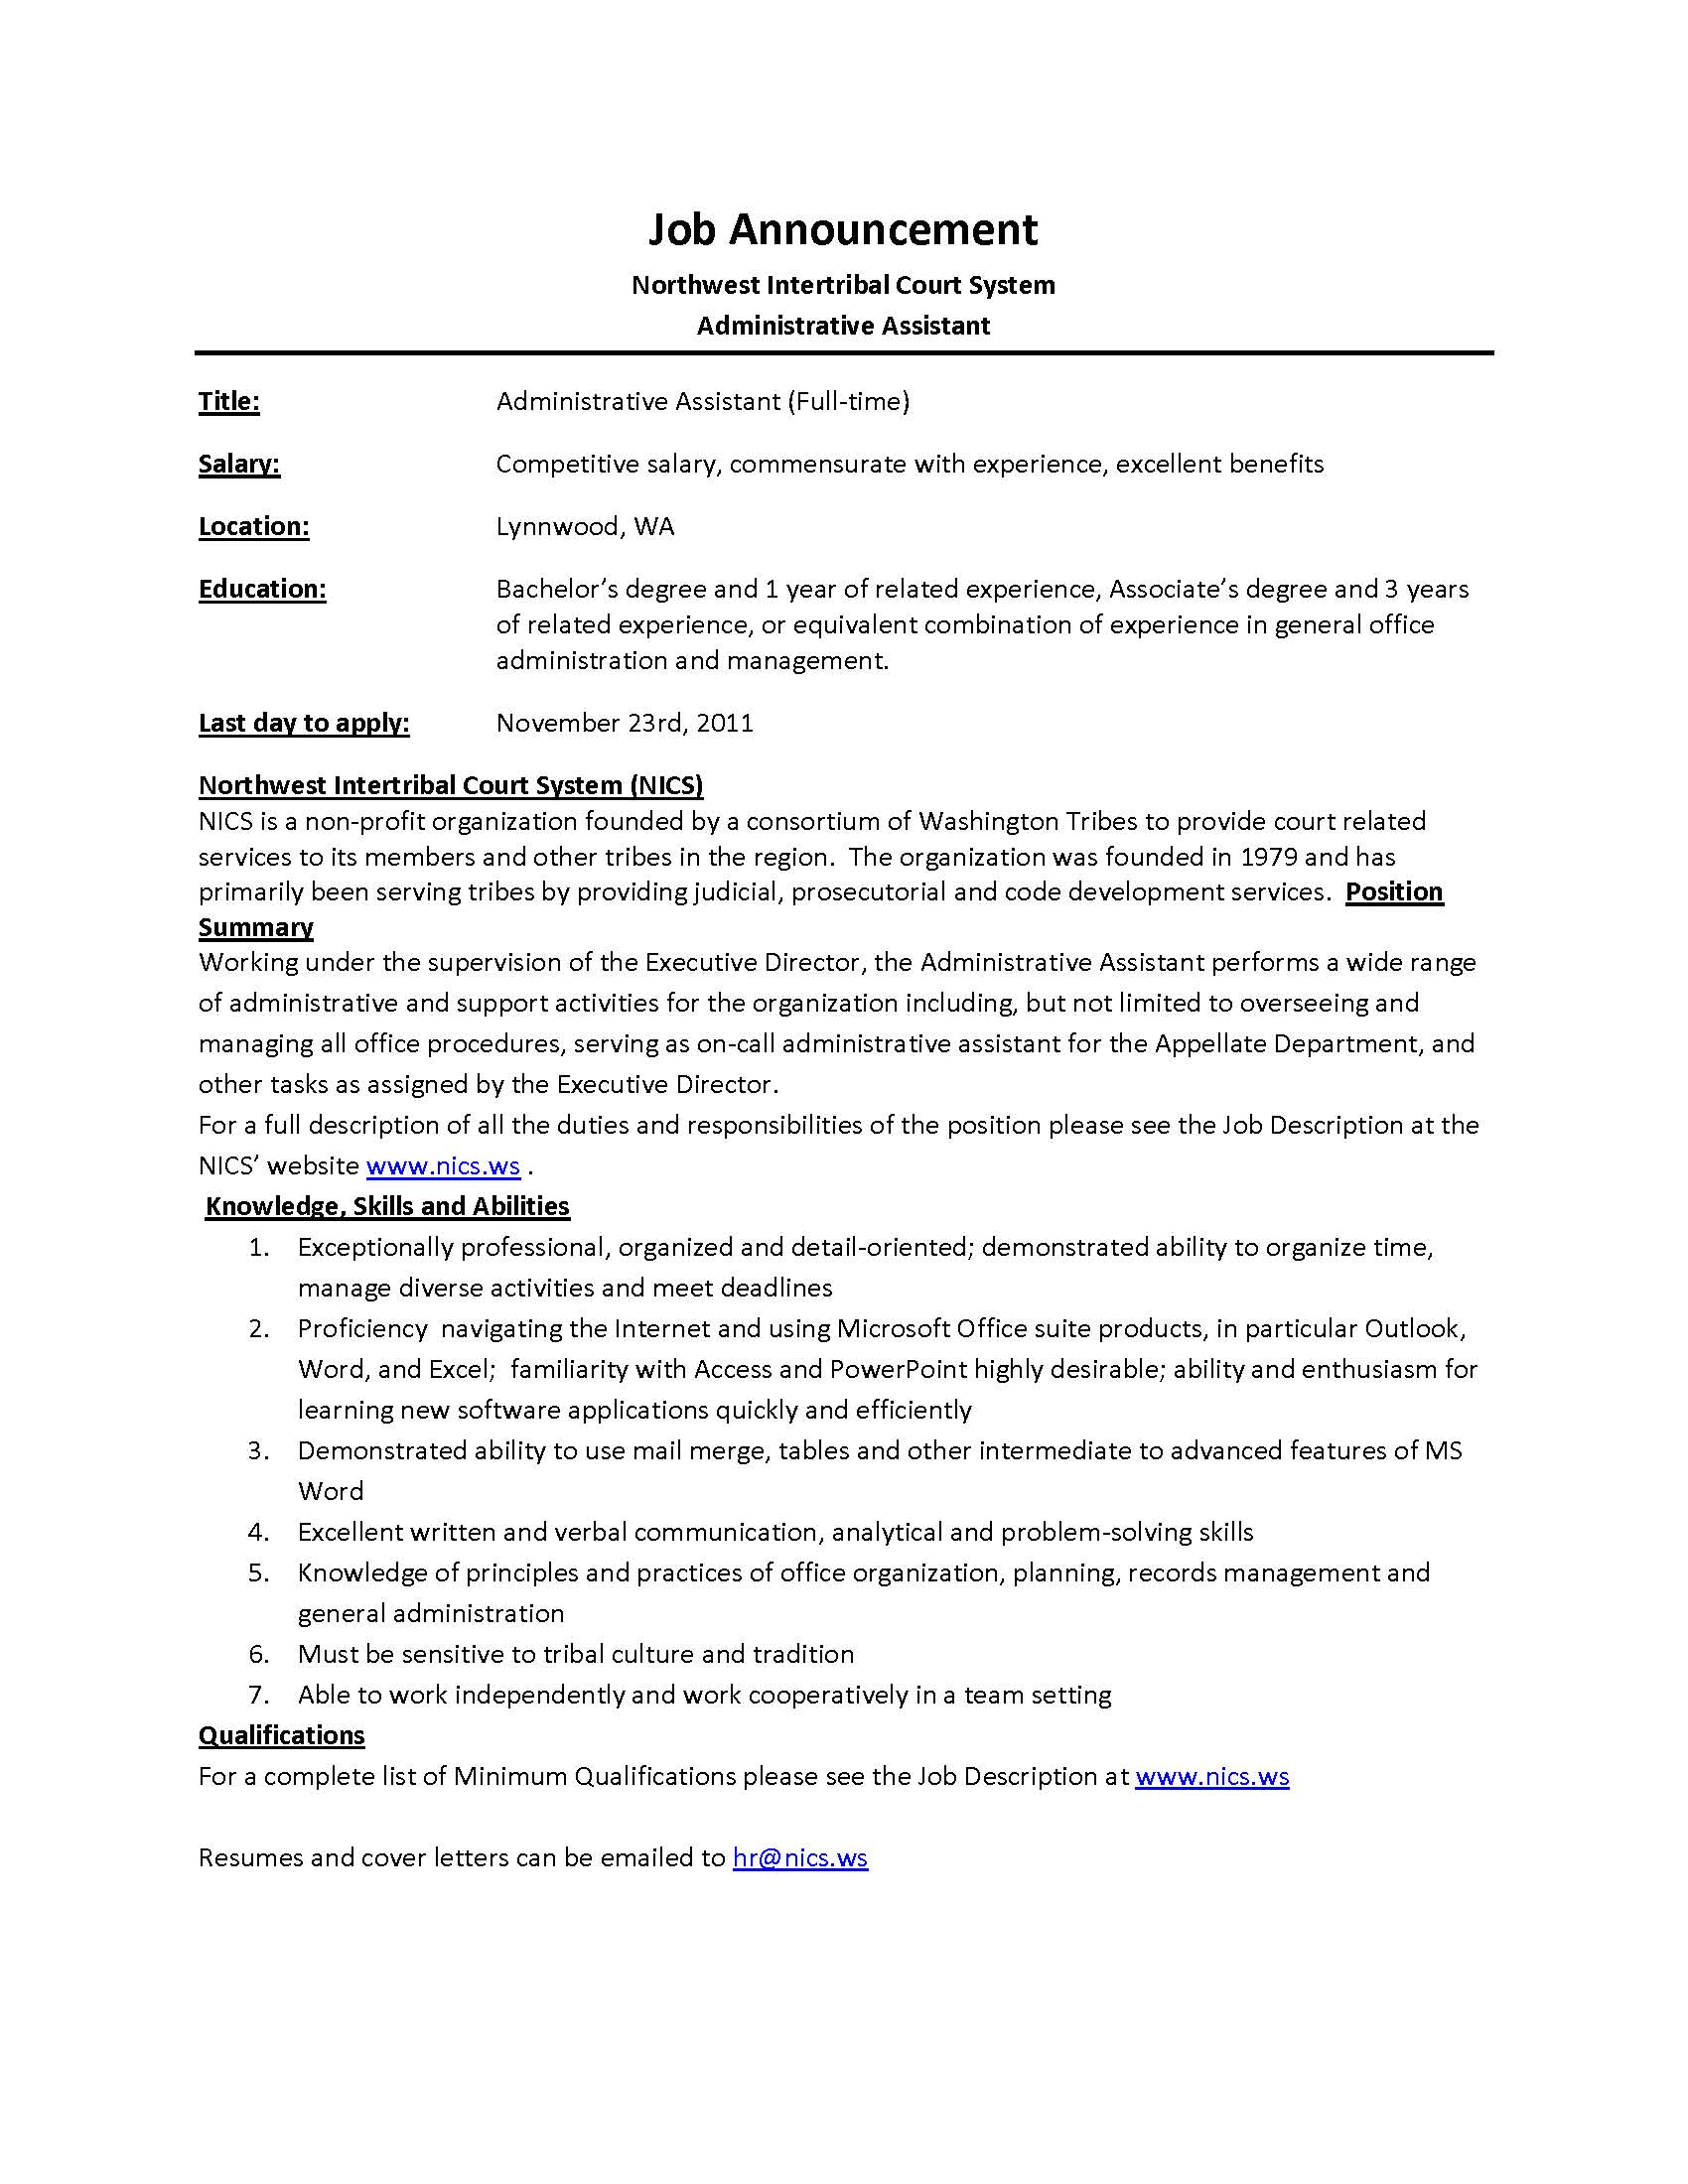 job announcement nics admin assistant administrative assistant job announcement nics admin assistant administrative assistant sample job description can assist